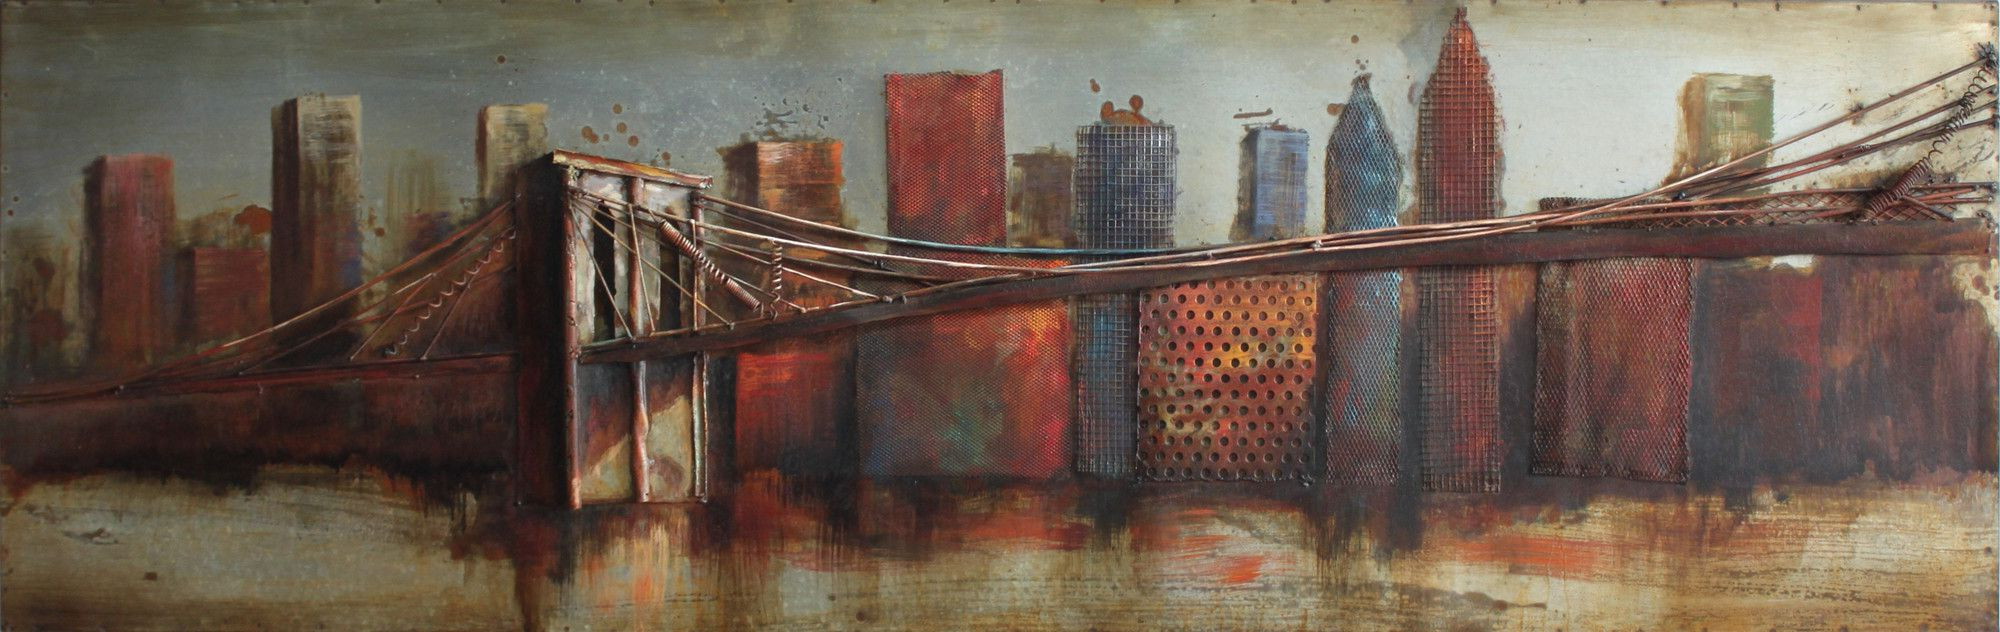 """bridge To The City"" Mixed Media Iron Hand Painted Dimensional Wall Decor Regarding Widely Used Bridge To The City 1 Mixed Media Iron Hand Painted Dimensional Wall (View 2 of 20)"